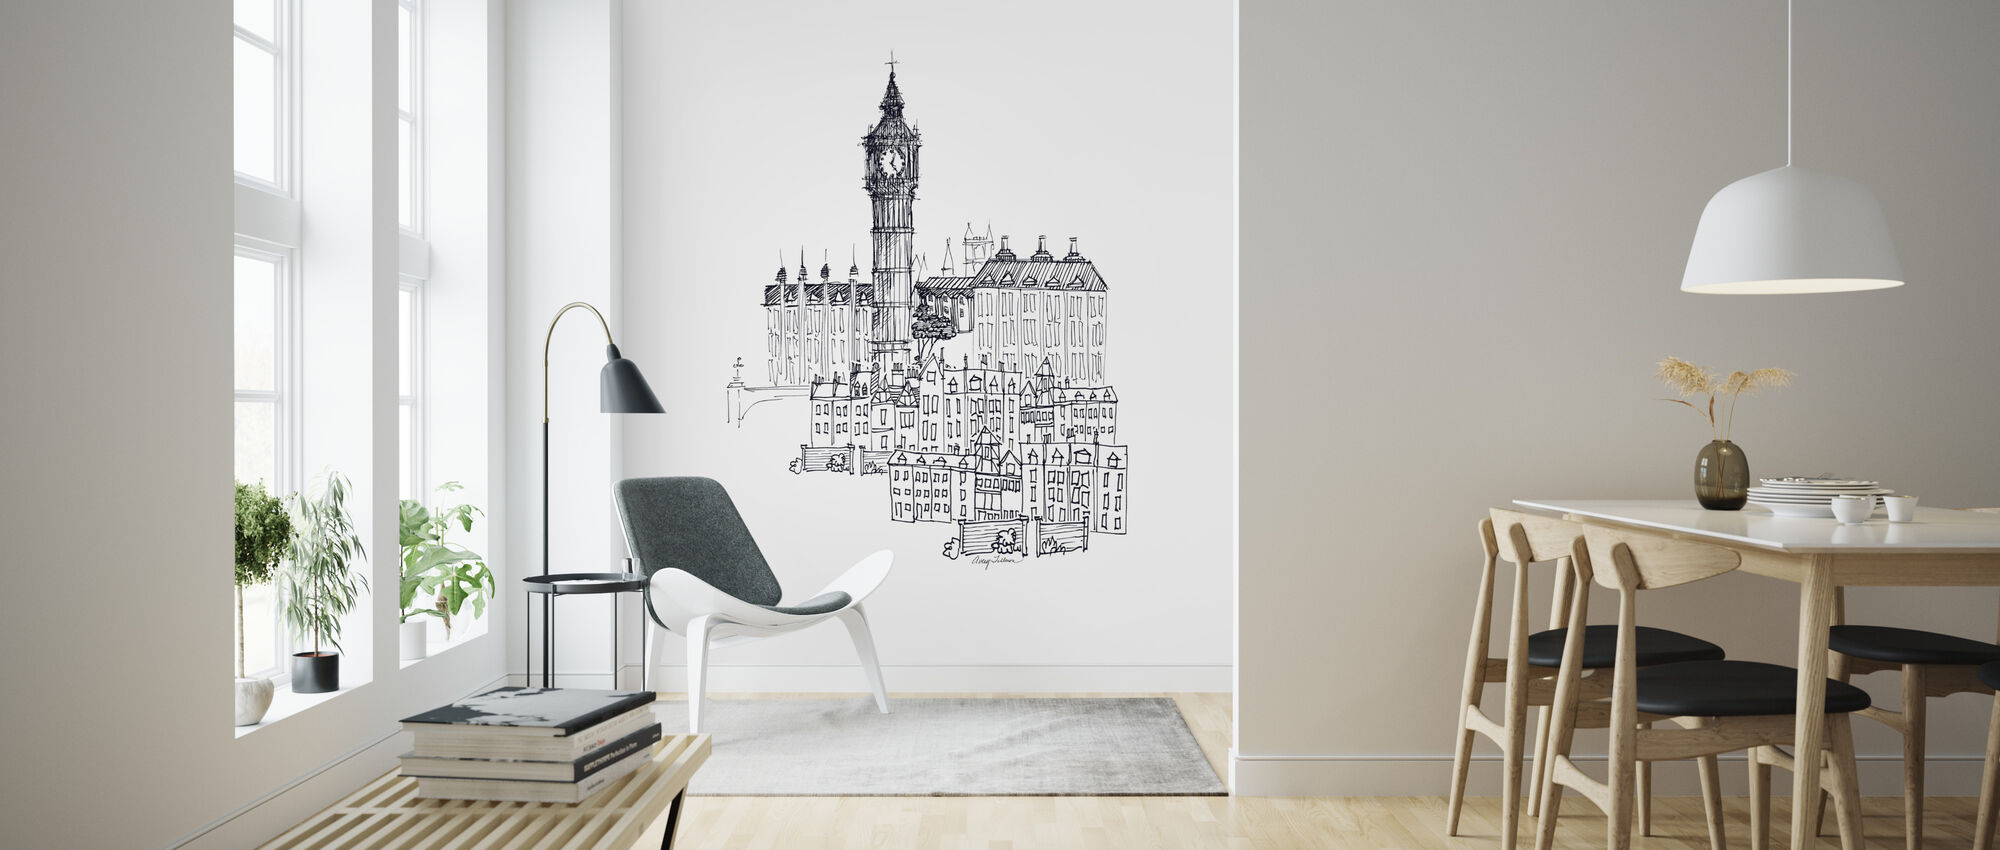 Avery Tillmon - Big Ben - Wallpaper - Living Room